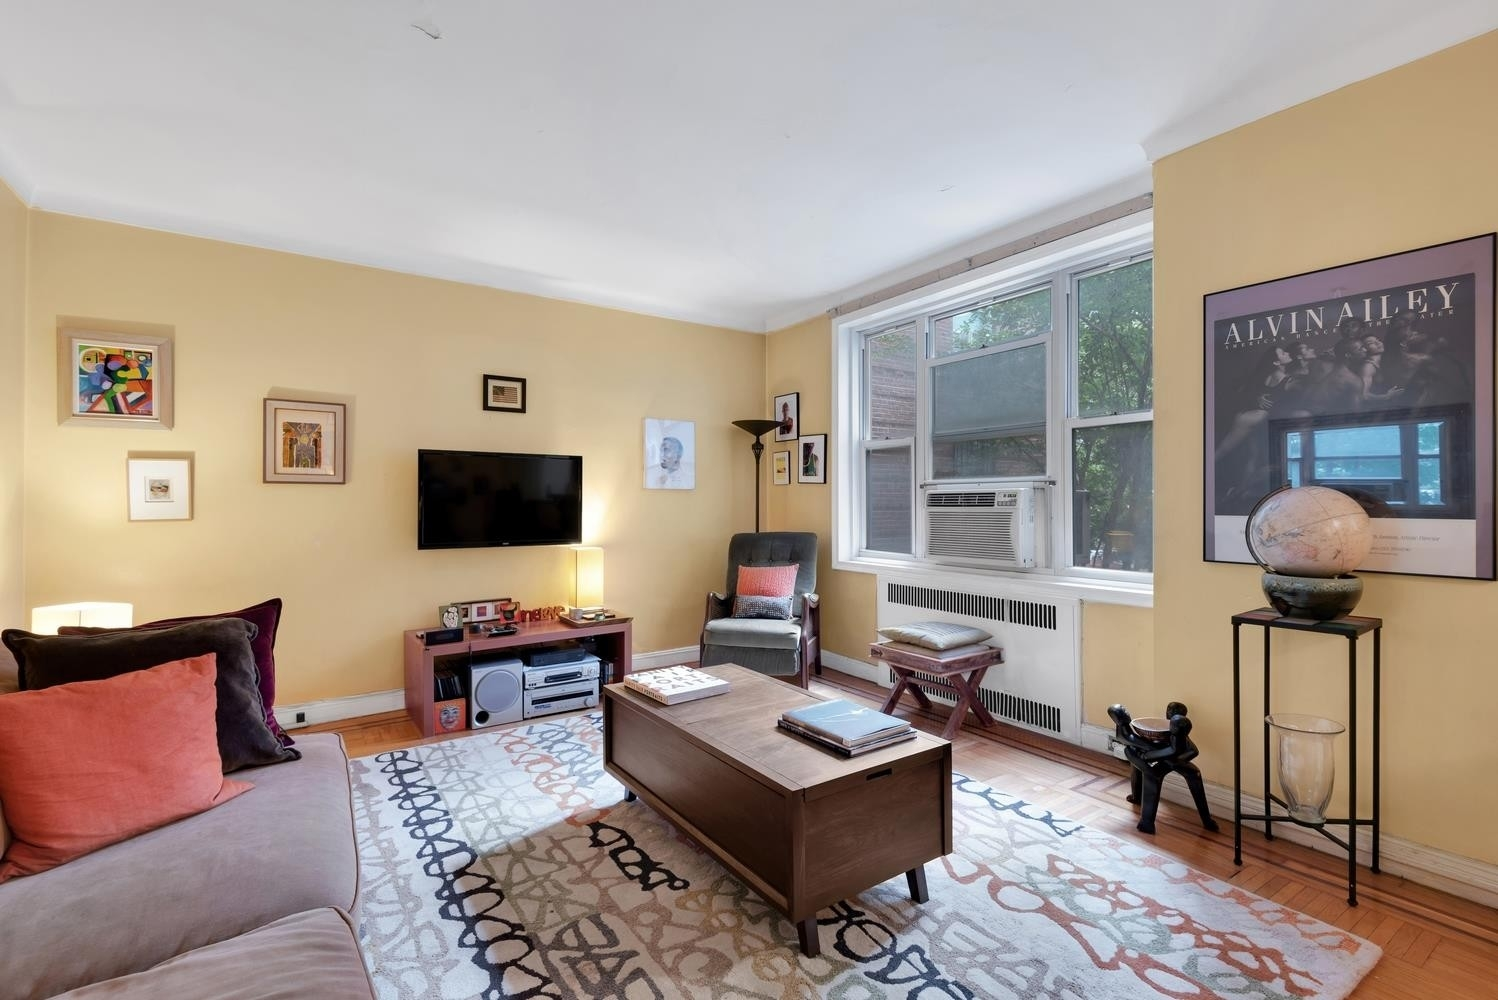 Co-op Properties for Sale at 44 Prospect Park West, A2 Park Slope, Brooklyn, NY 11215